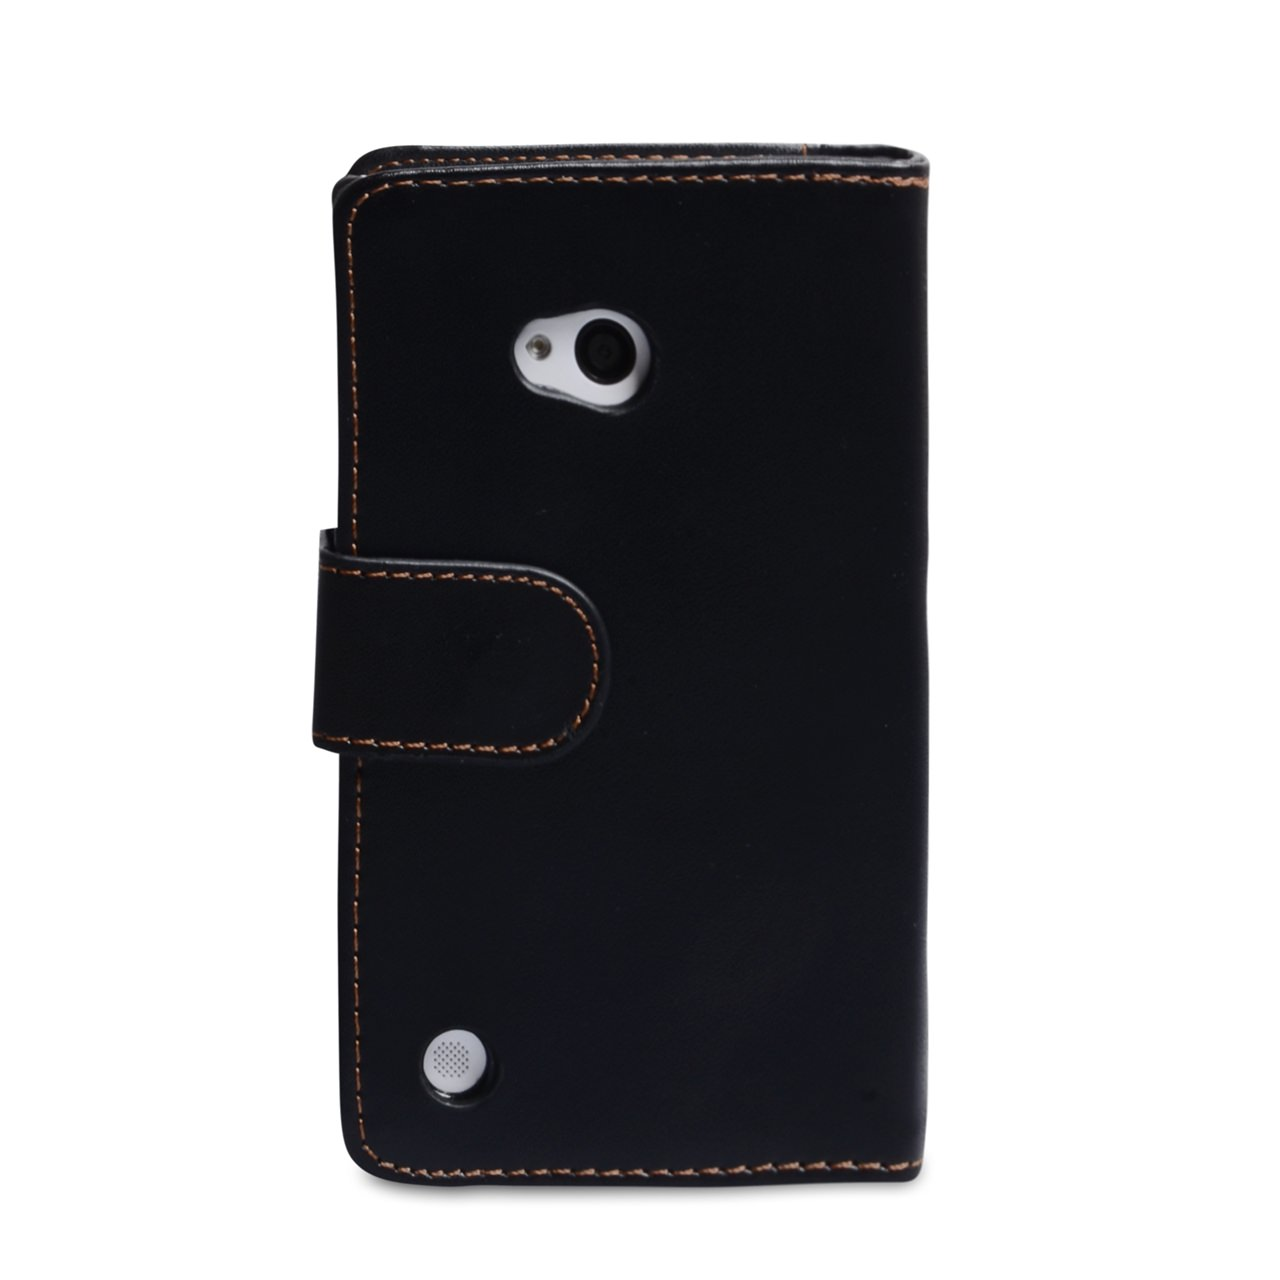 YouSave Accessories Nokia Lumia 720 Leather Effect Wallet Case - Black